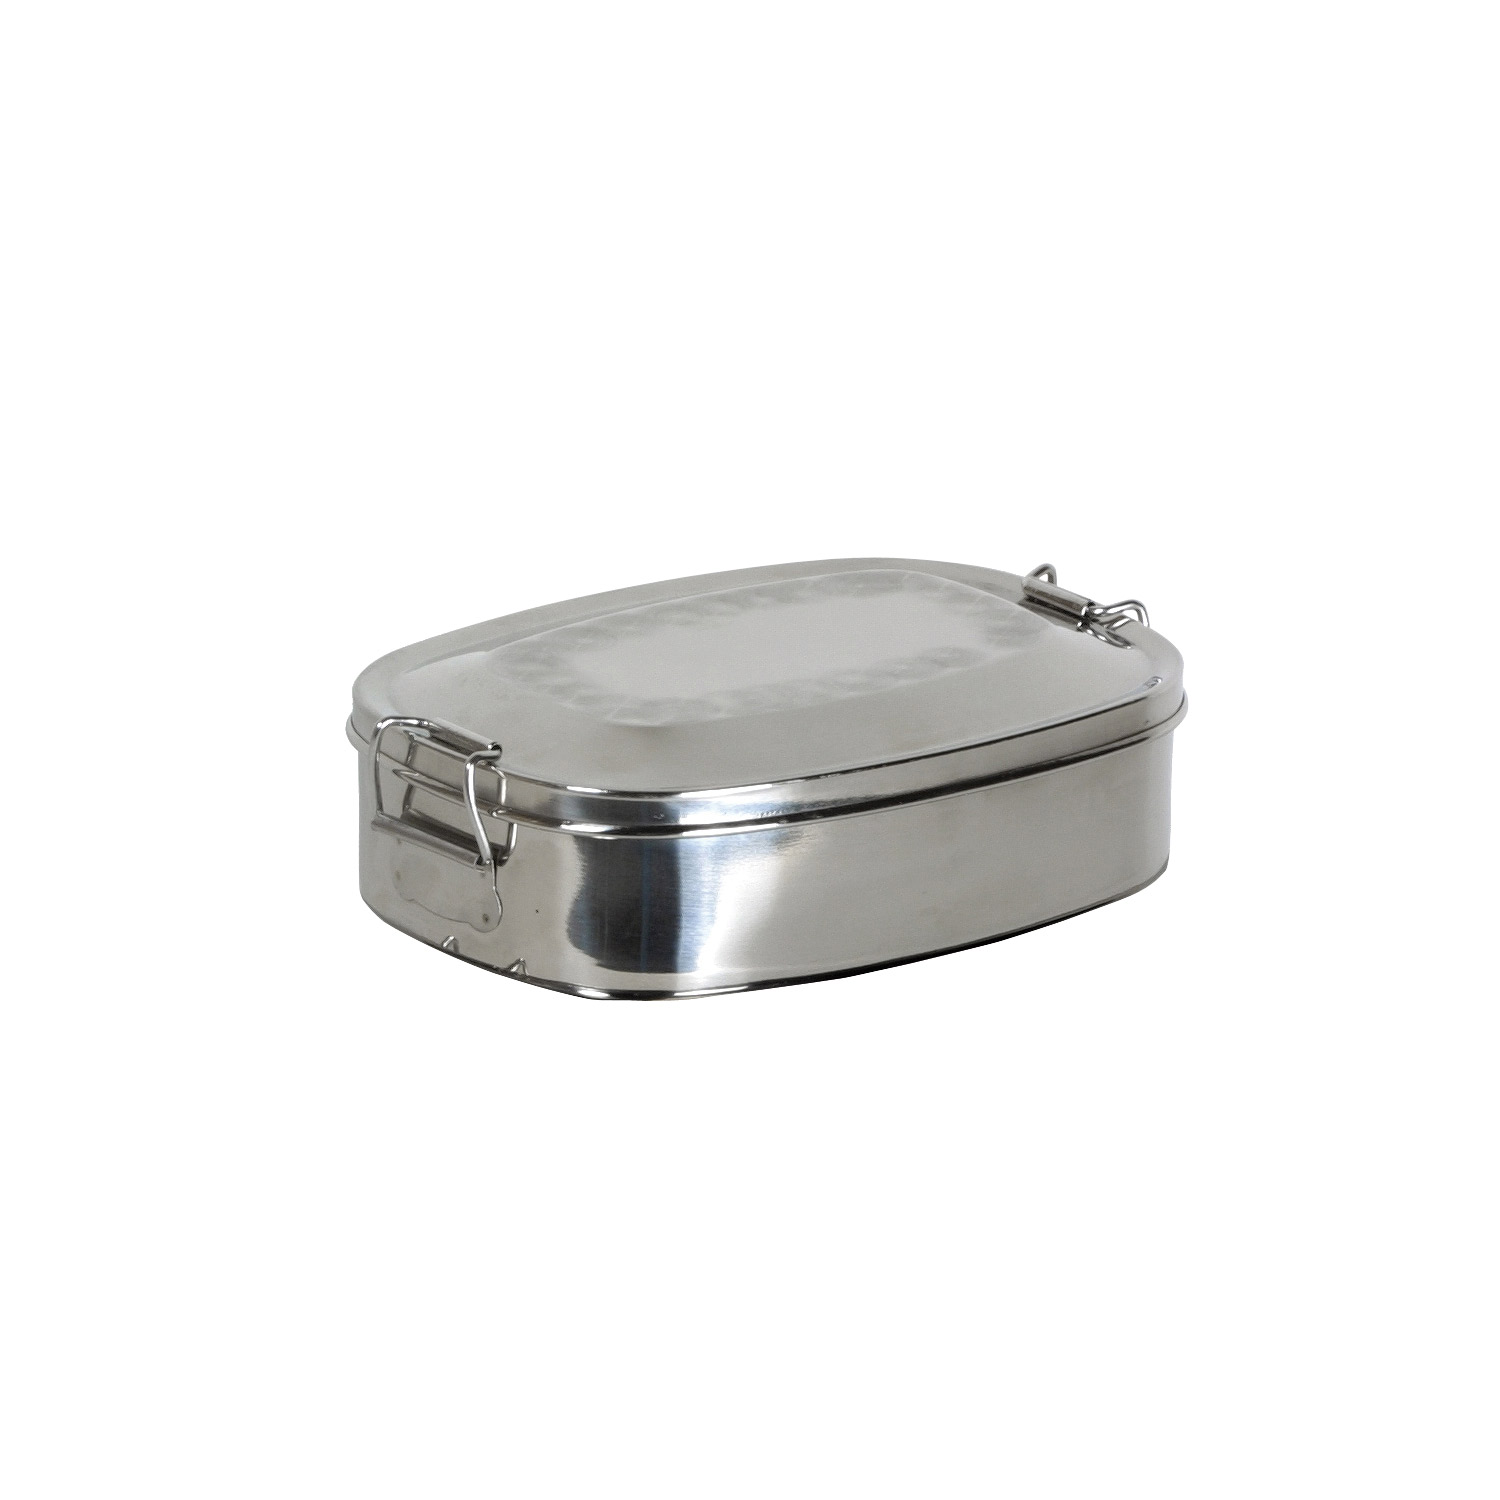 Oval Lunch Box made of Stainless Steel